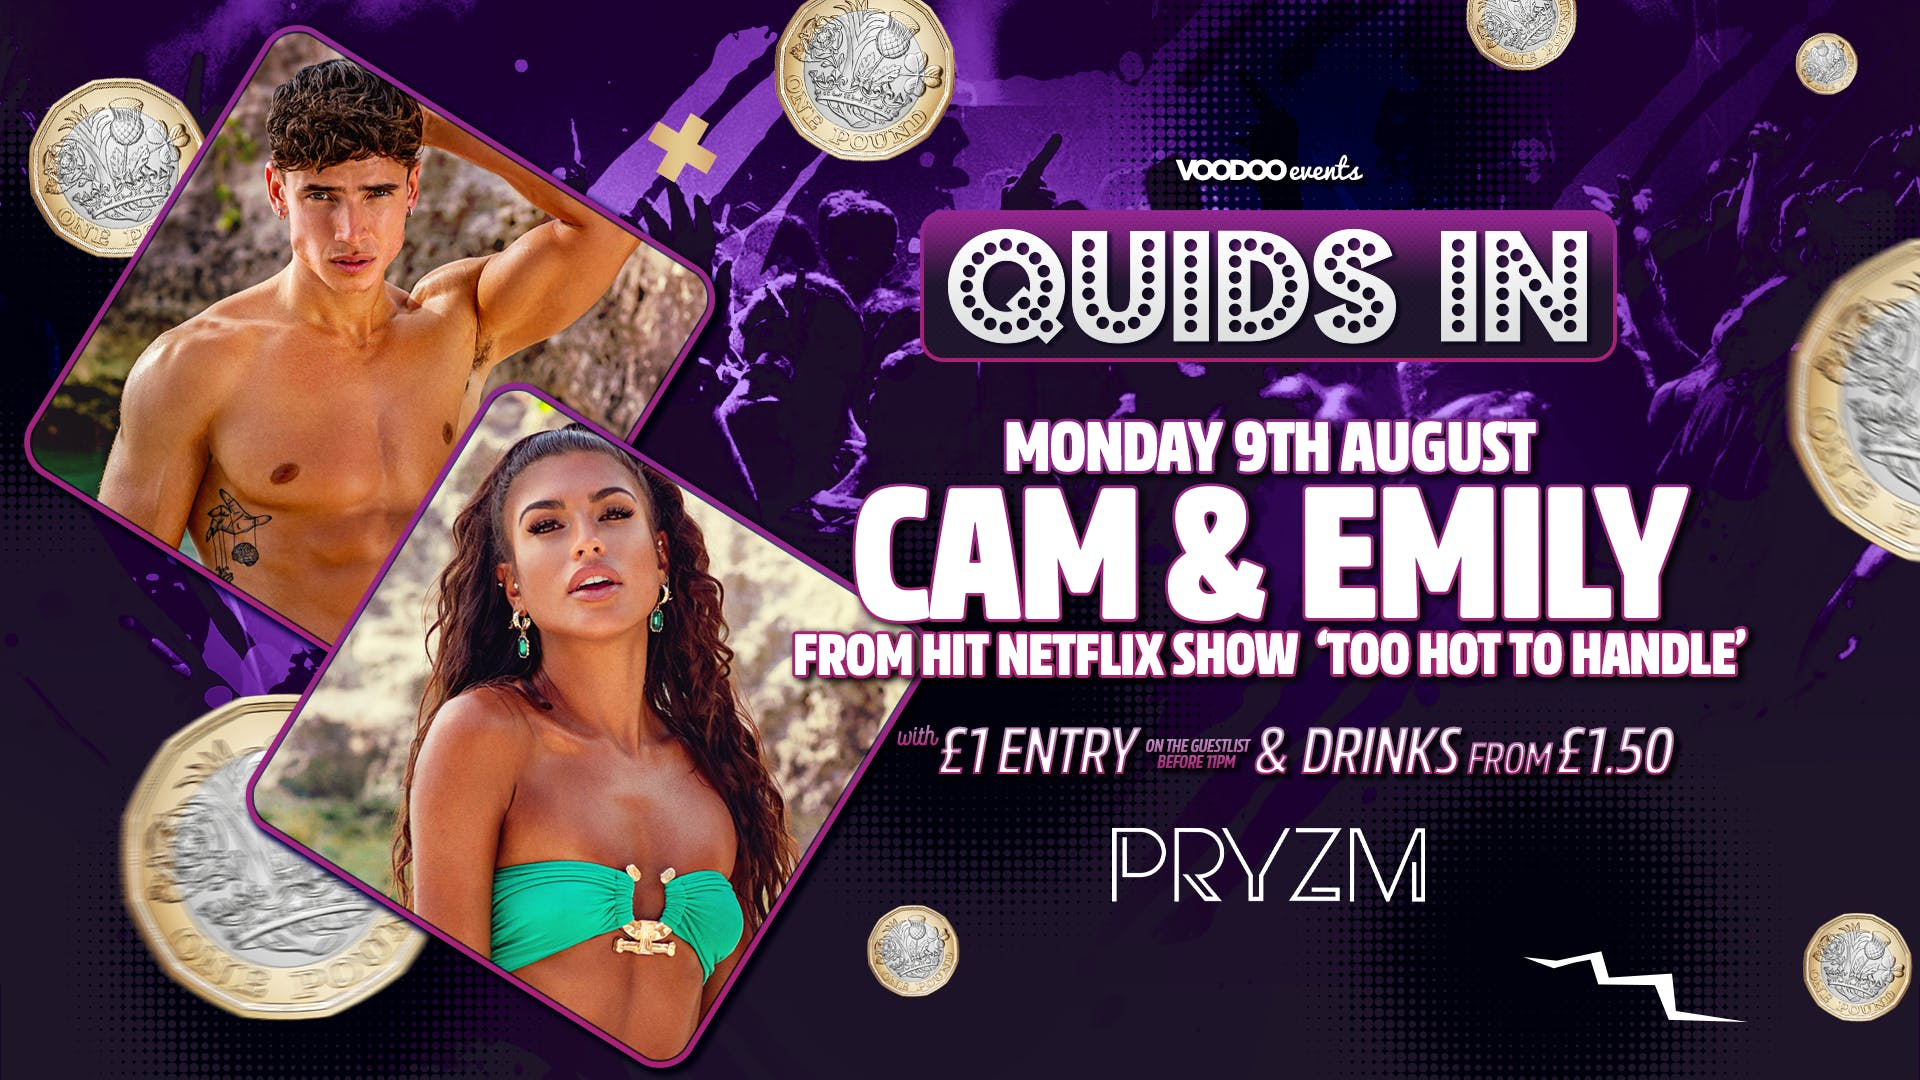 Quids In Presents CAM & EMILY from TOO HOT TO HANDLE!